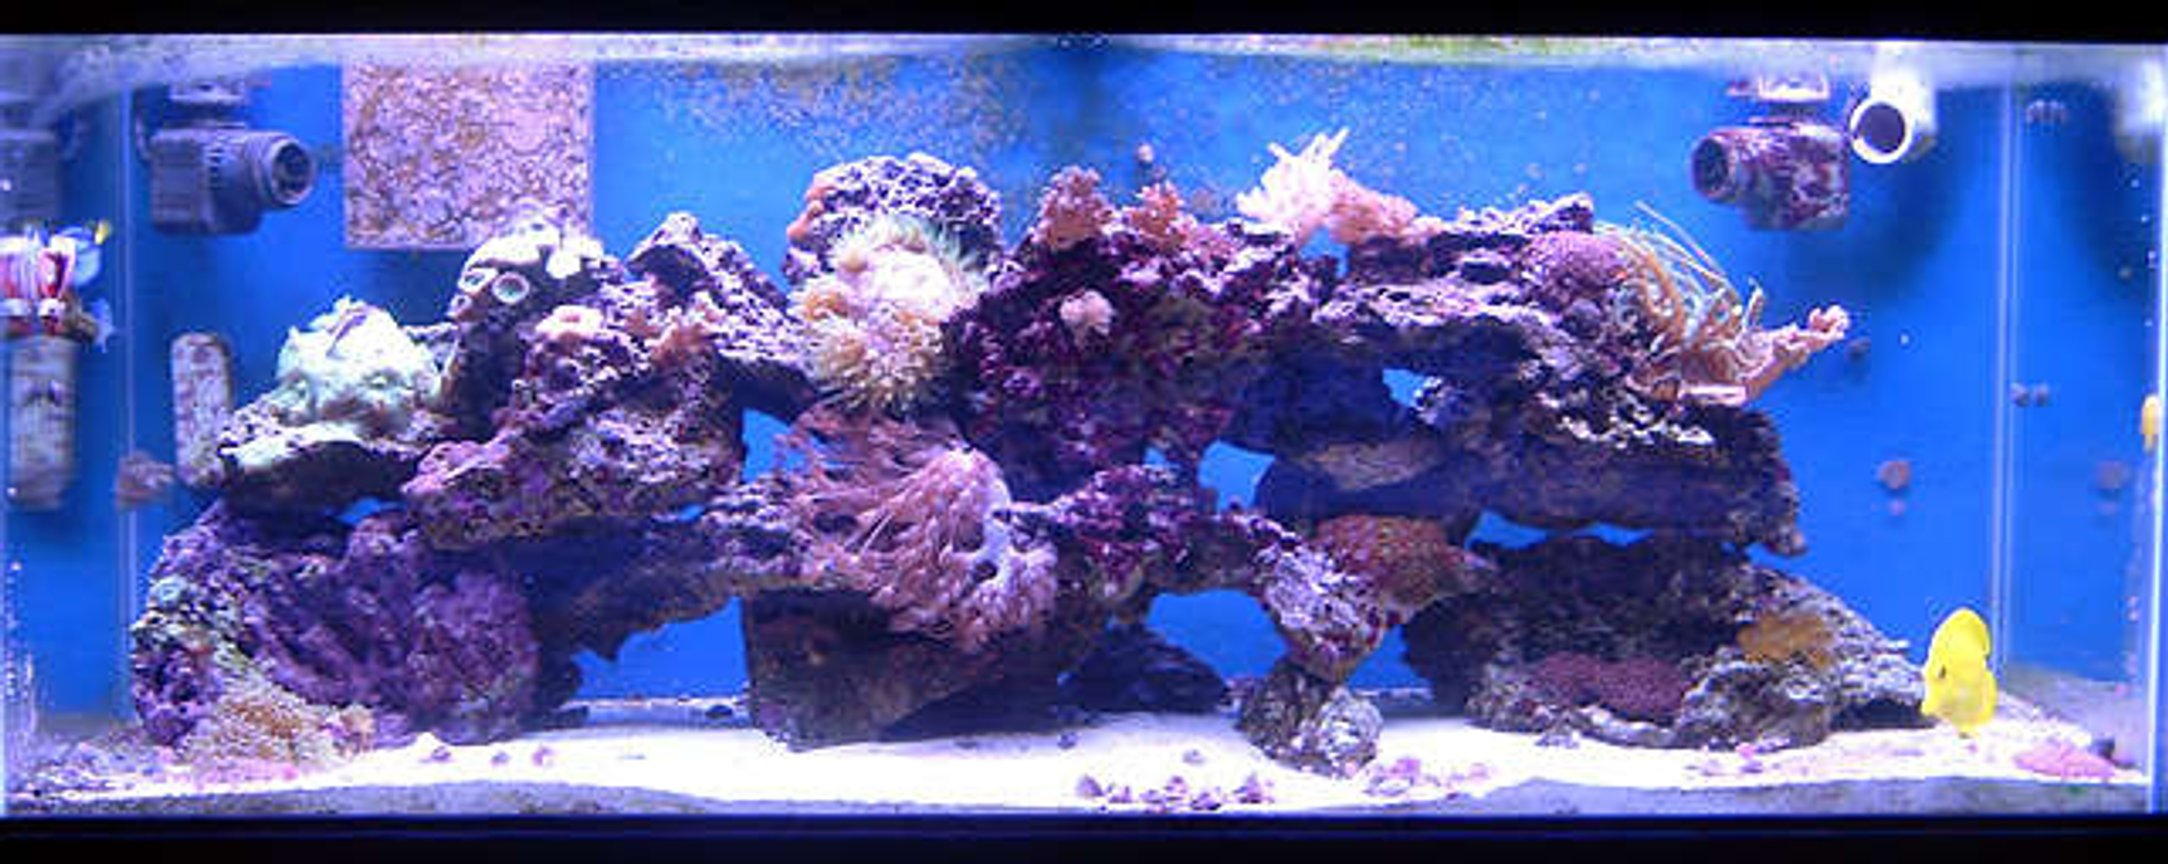 75 gallons reef tank (mostly live coral and fish) - My 75g mixed reef tank.